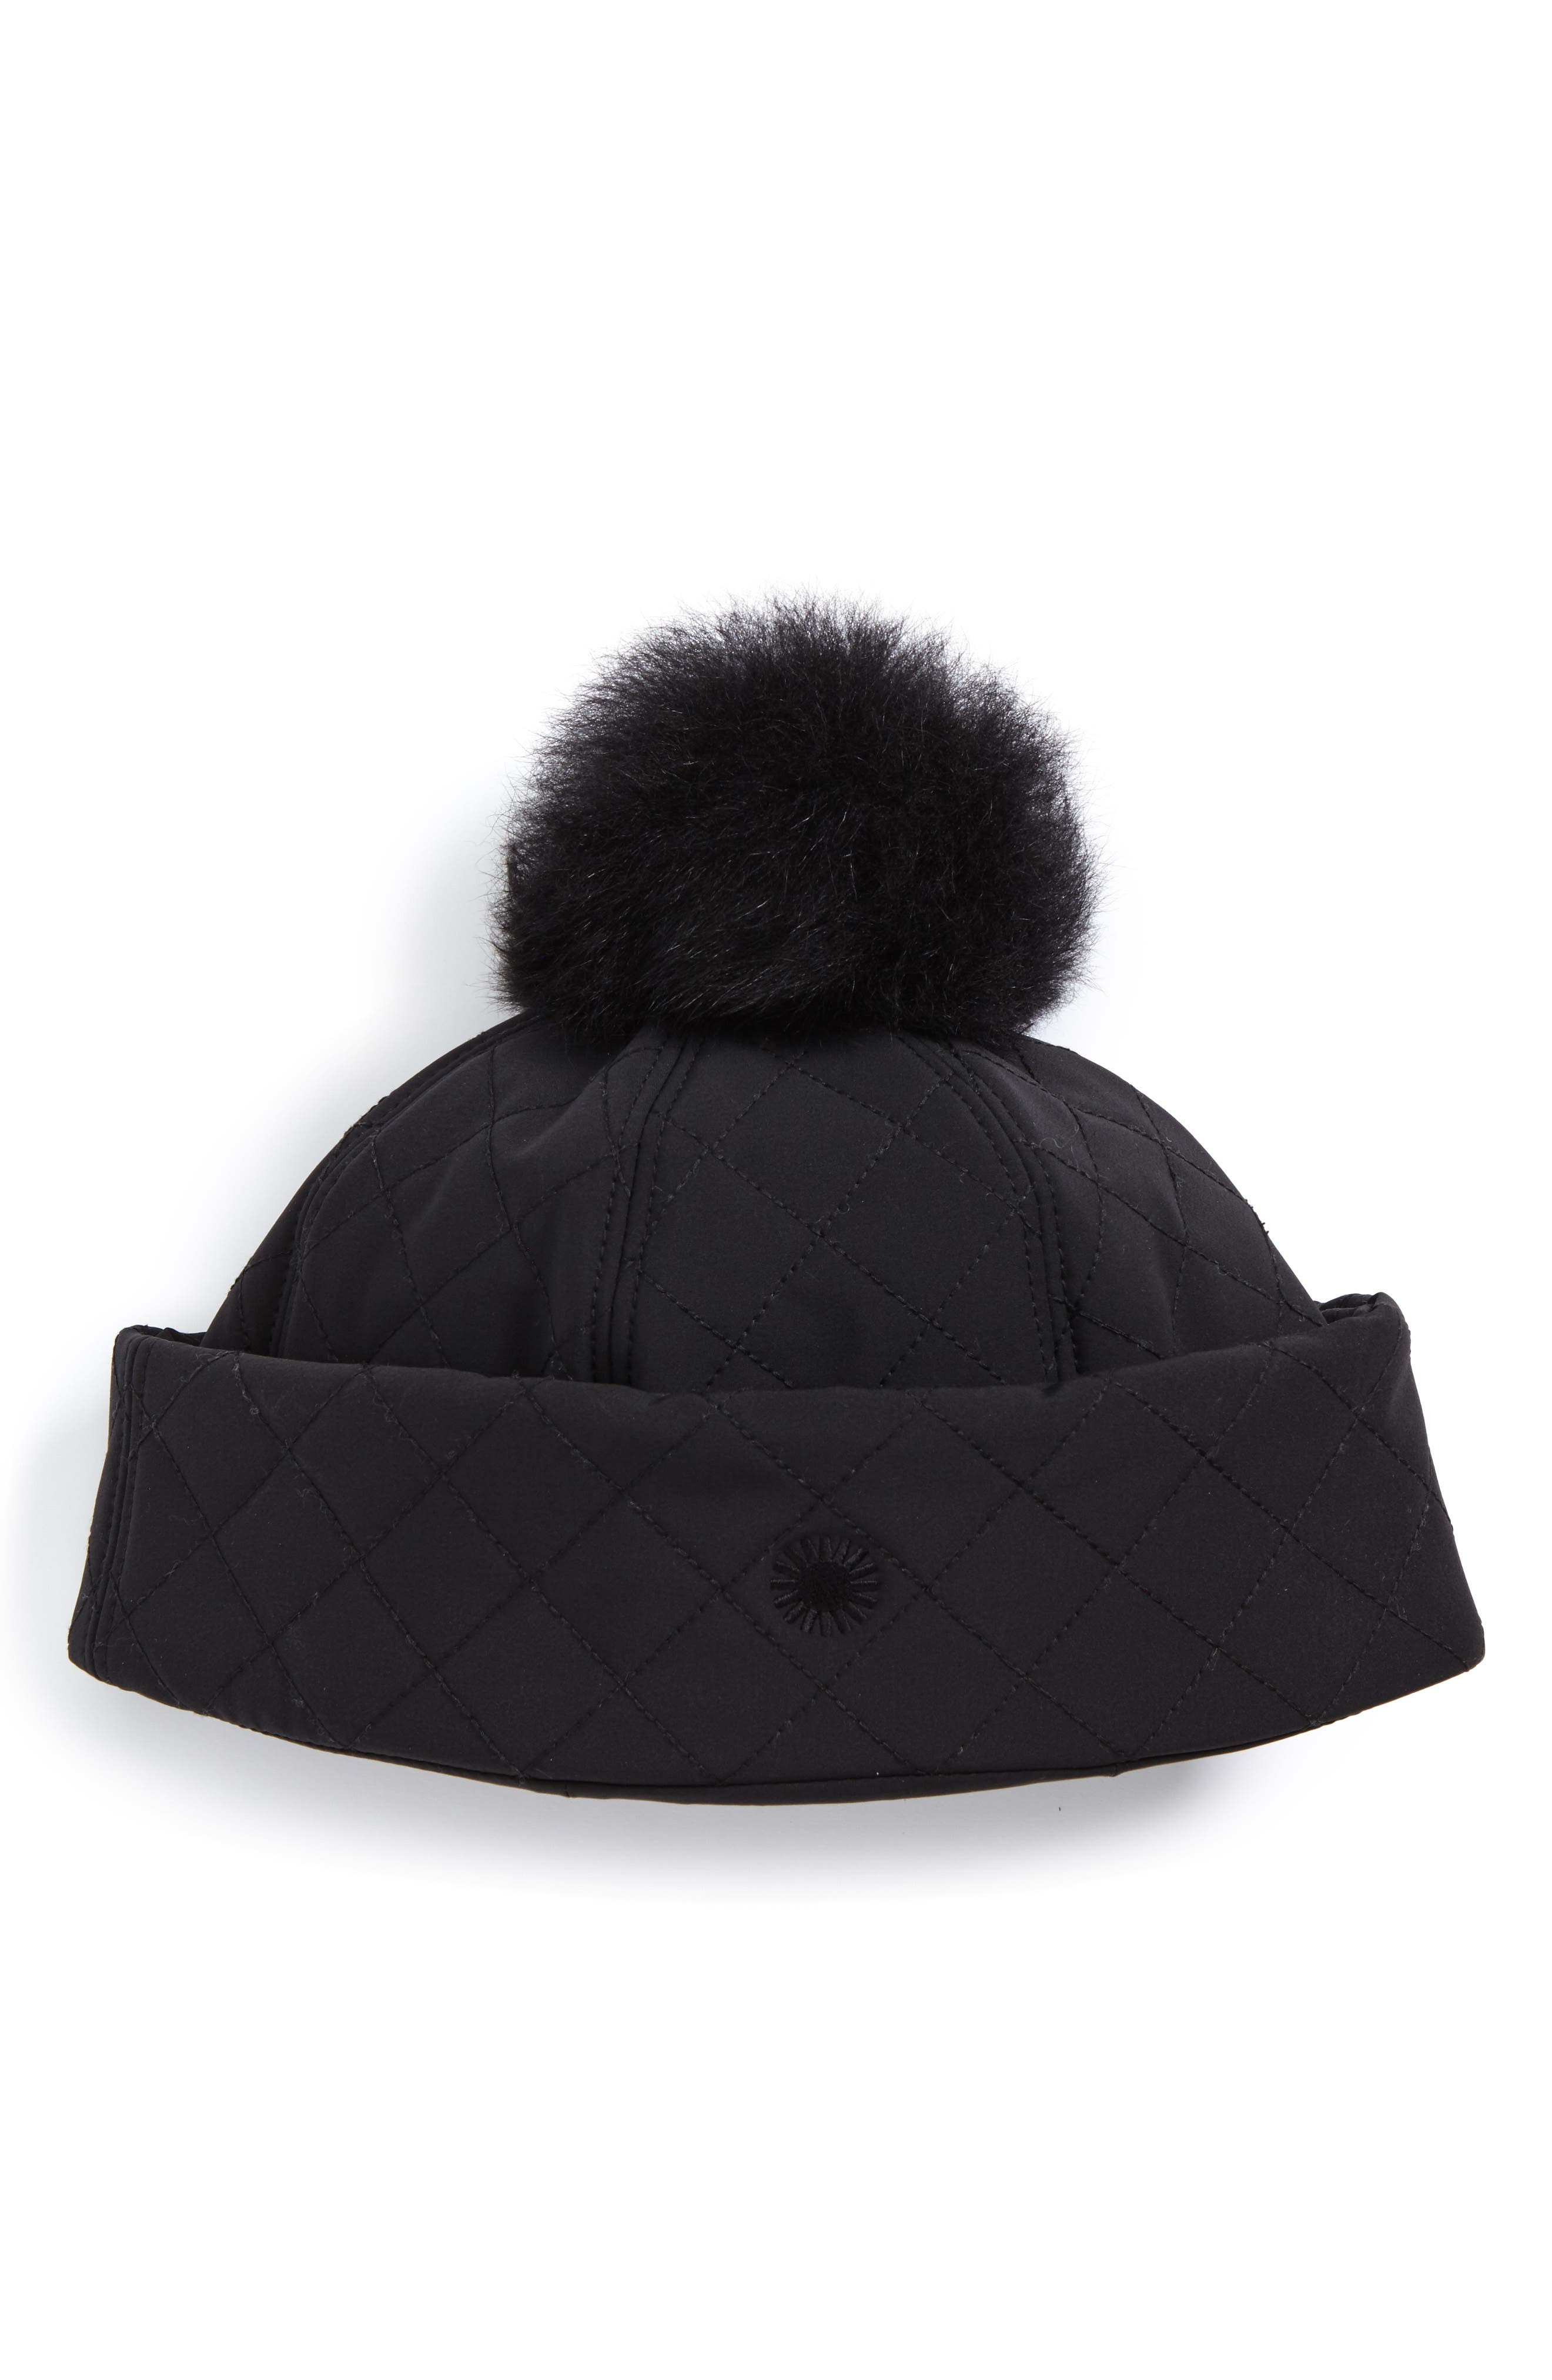 Australia Water Resistant Quilted Hat with Genuine Shearling Pompom,                         Main,                         color, BLACK